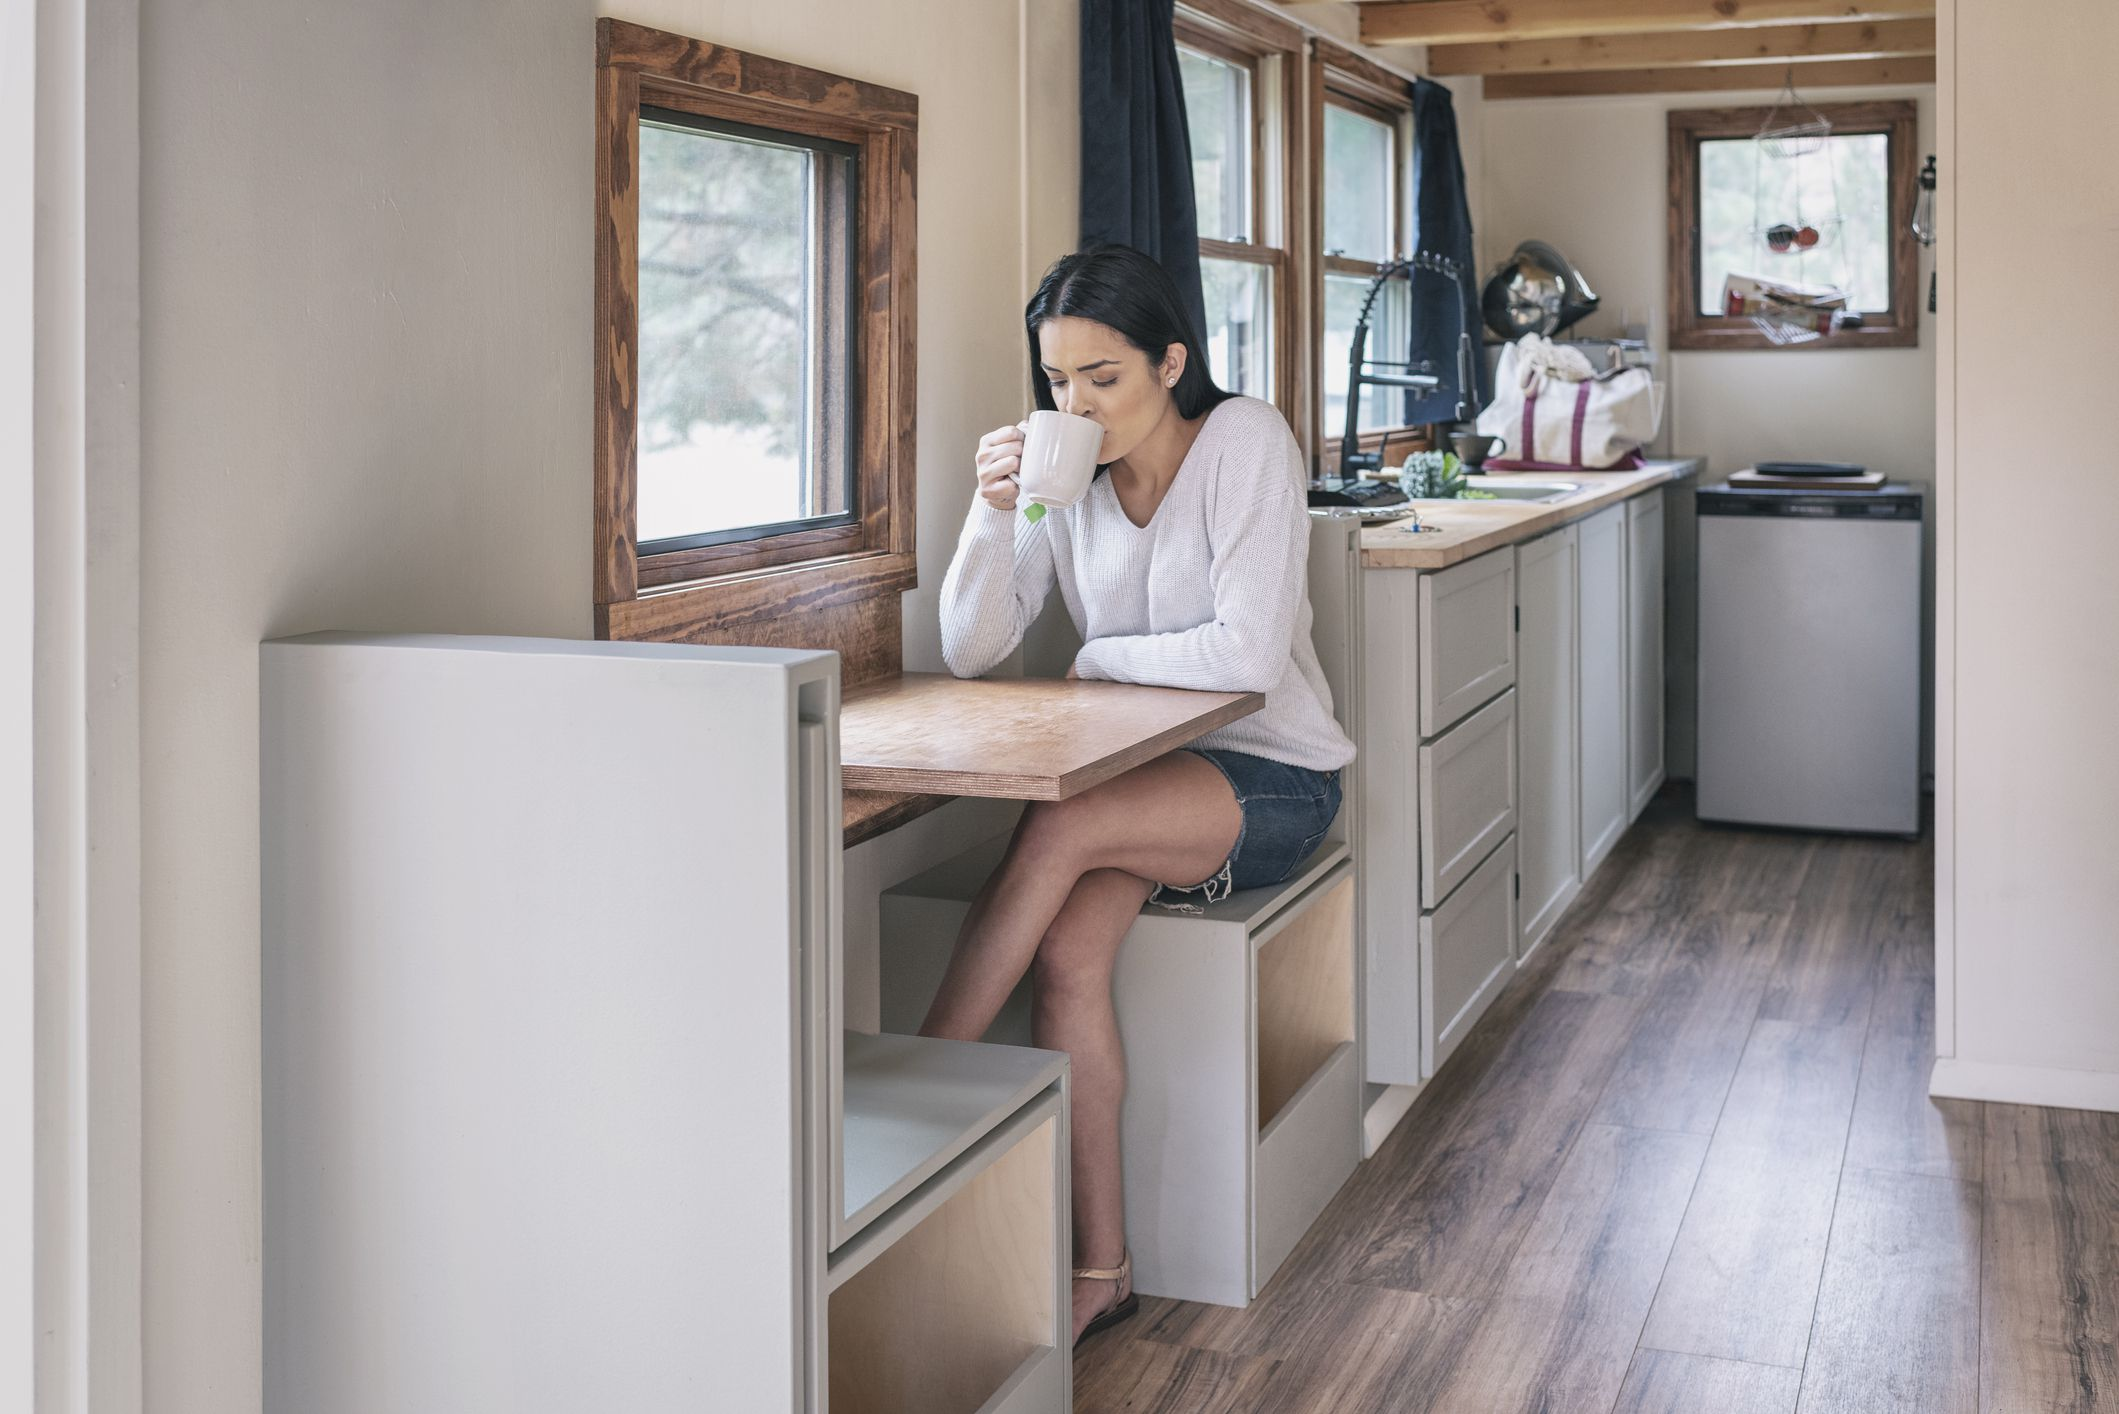 What Is a Micro Apartment (and Should You Invest in One)?